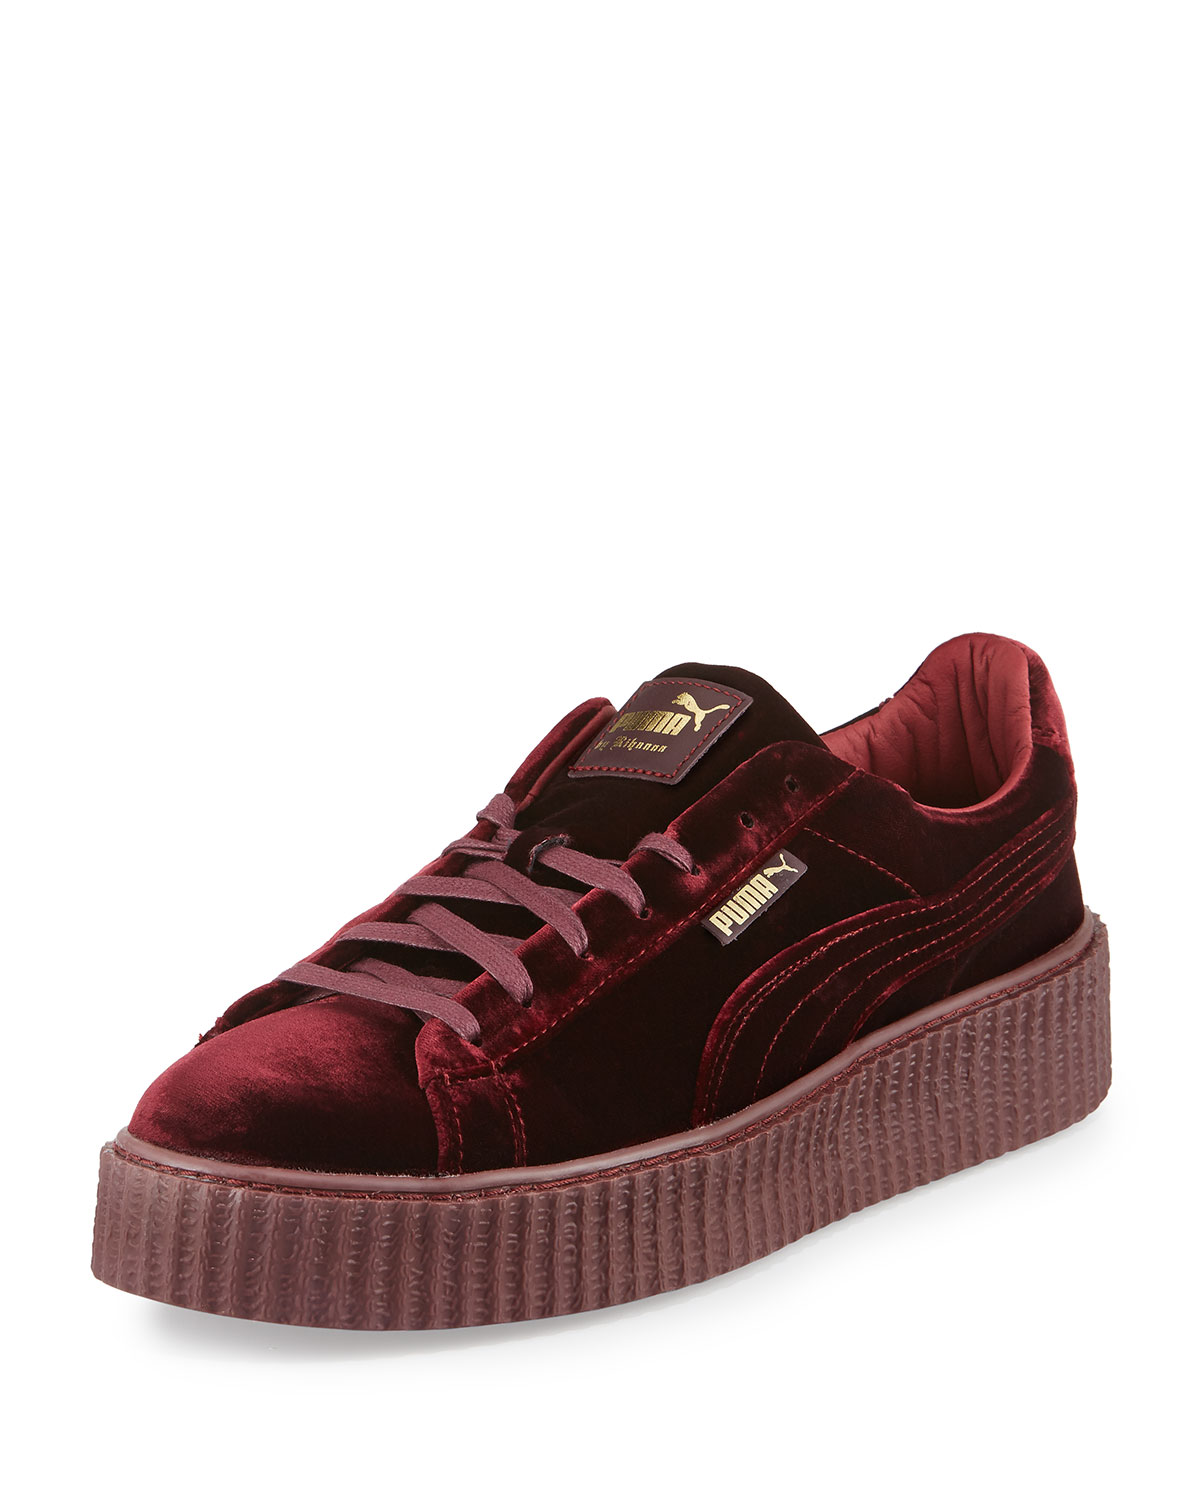 puma creepers velvet red